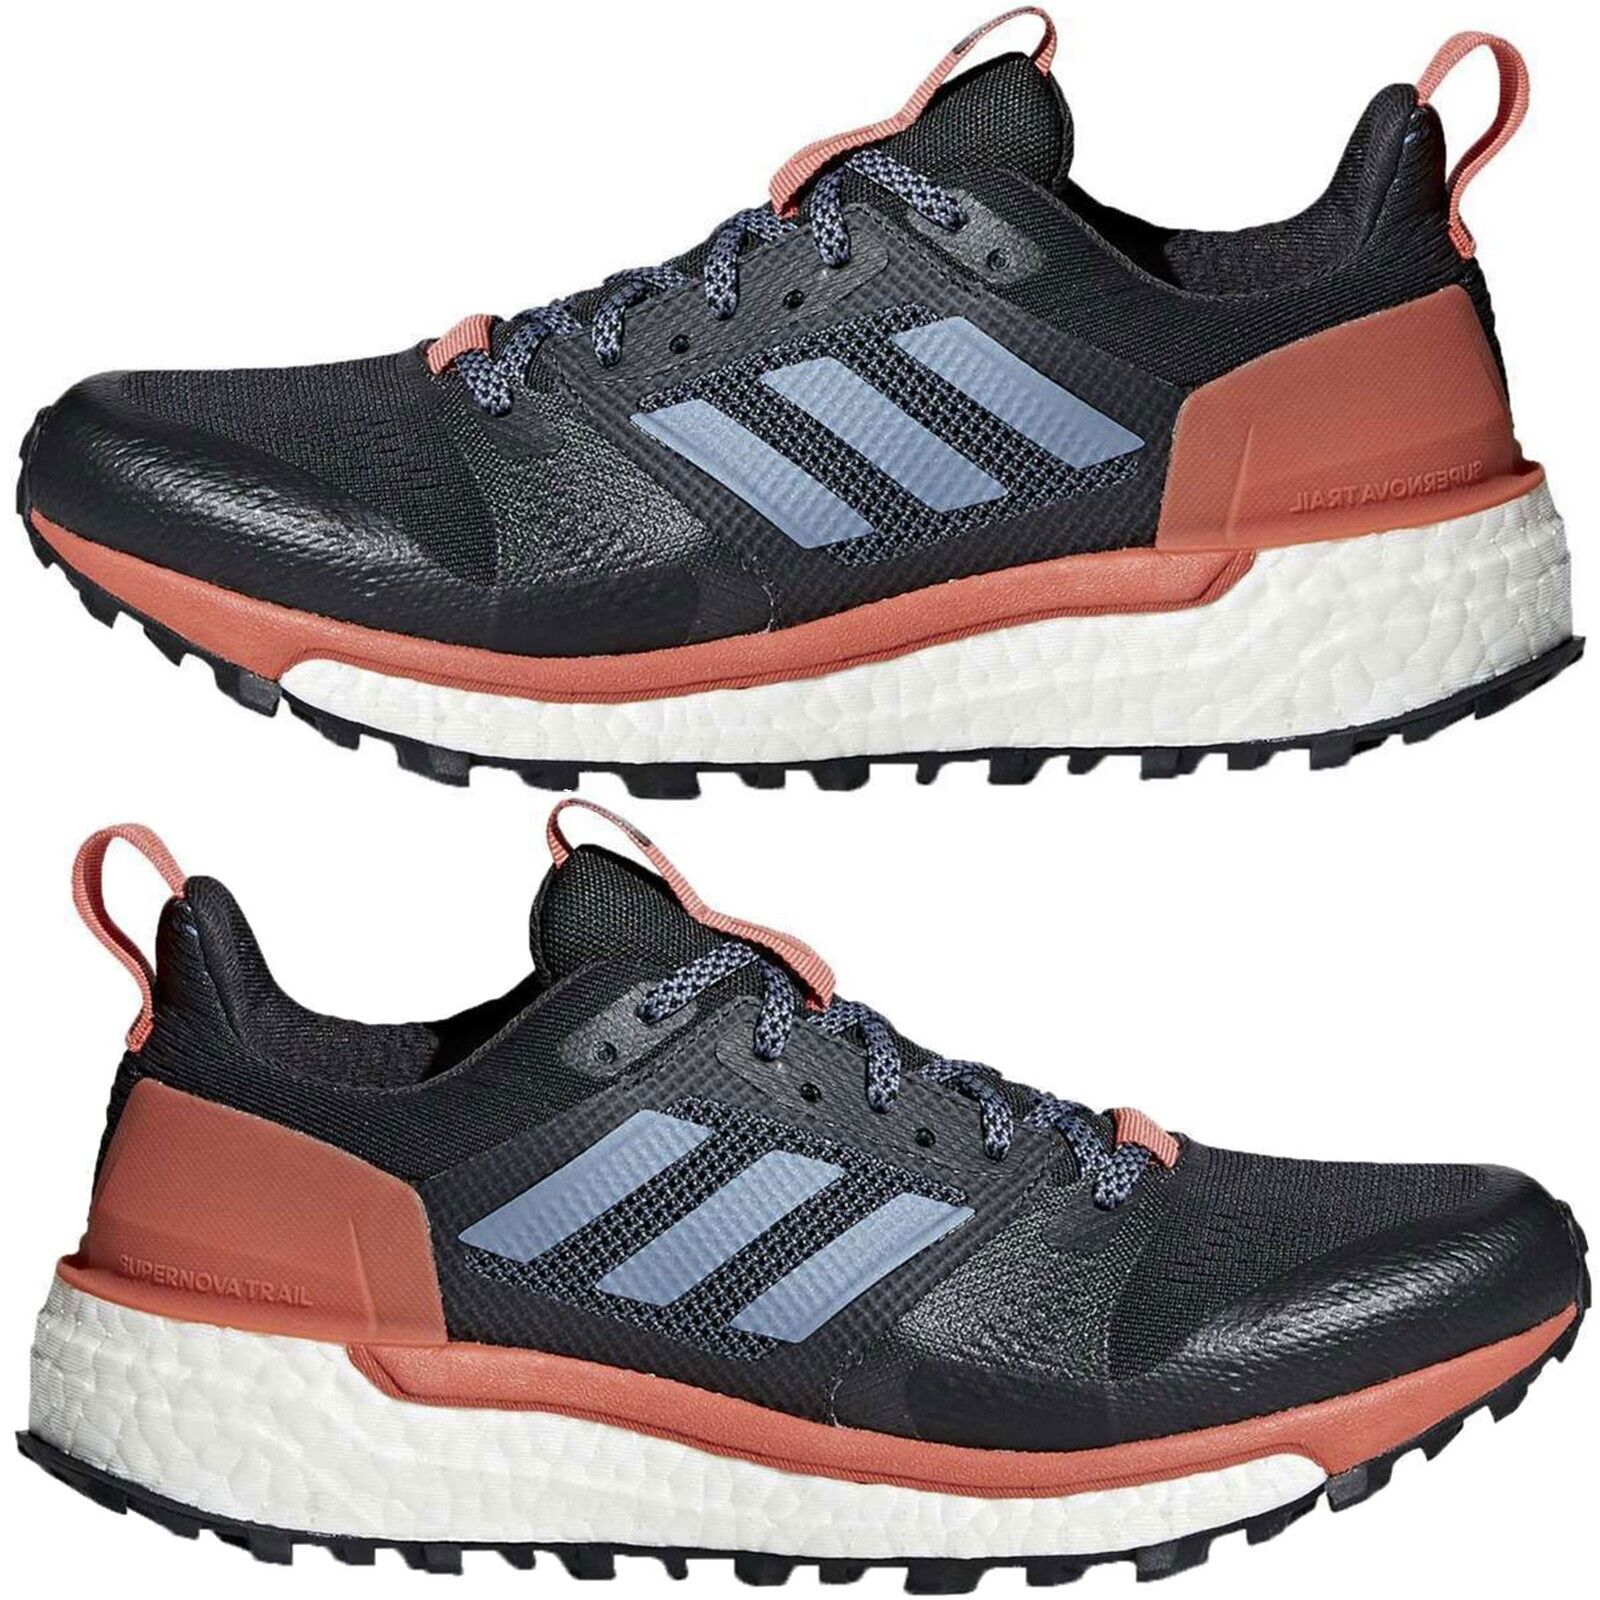 Adidas Women's Athletic Shoes Supernova Trail Running Lace Up Sneakers Authentic